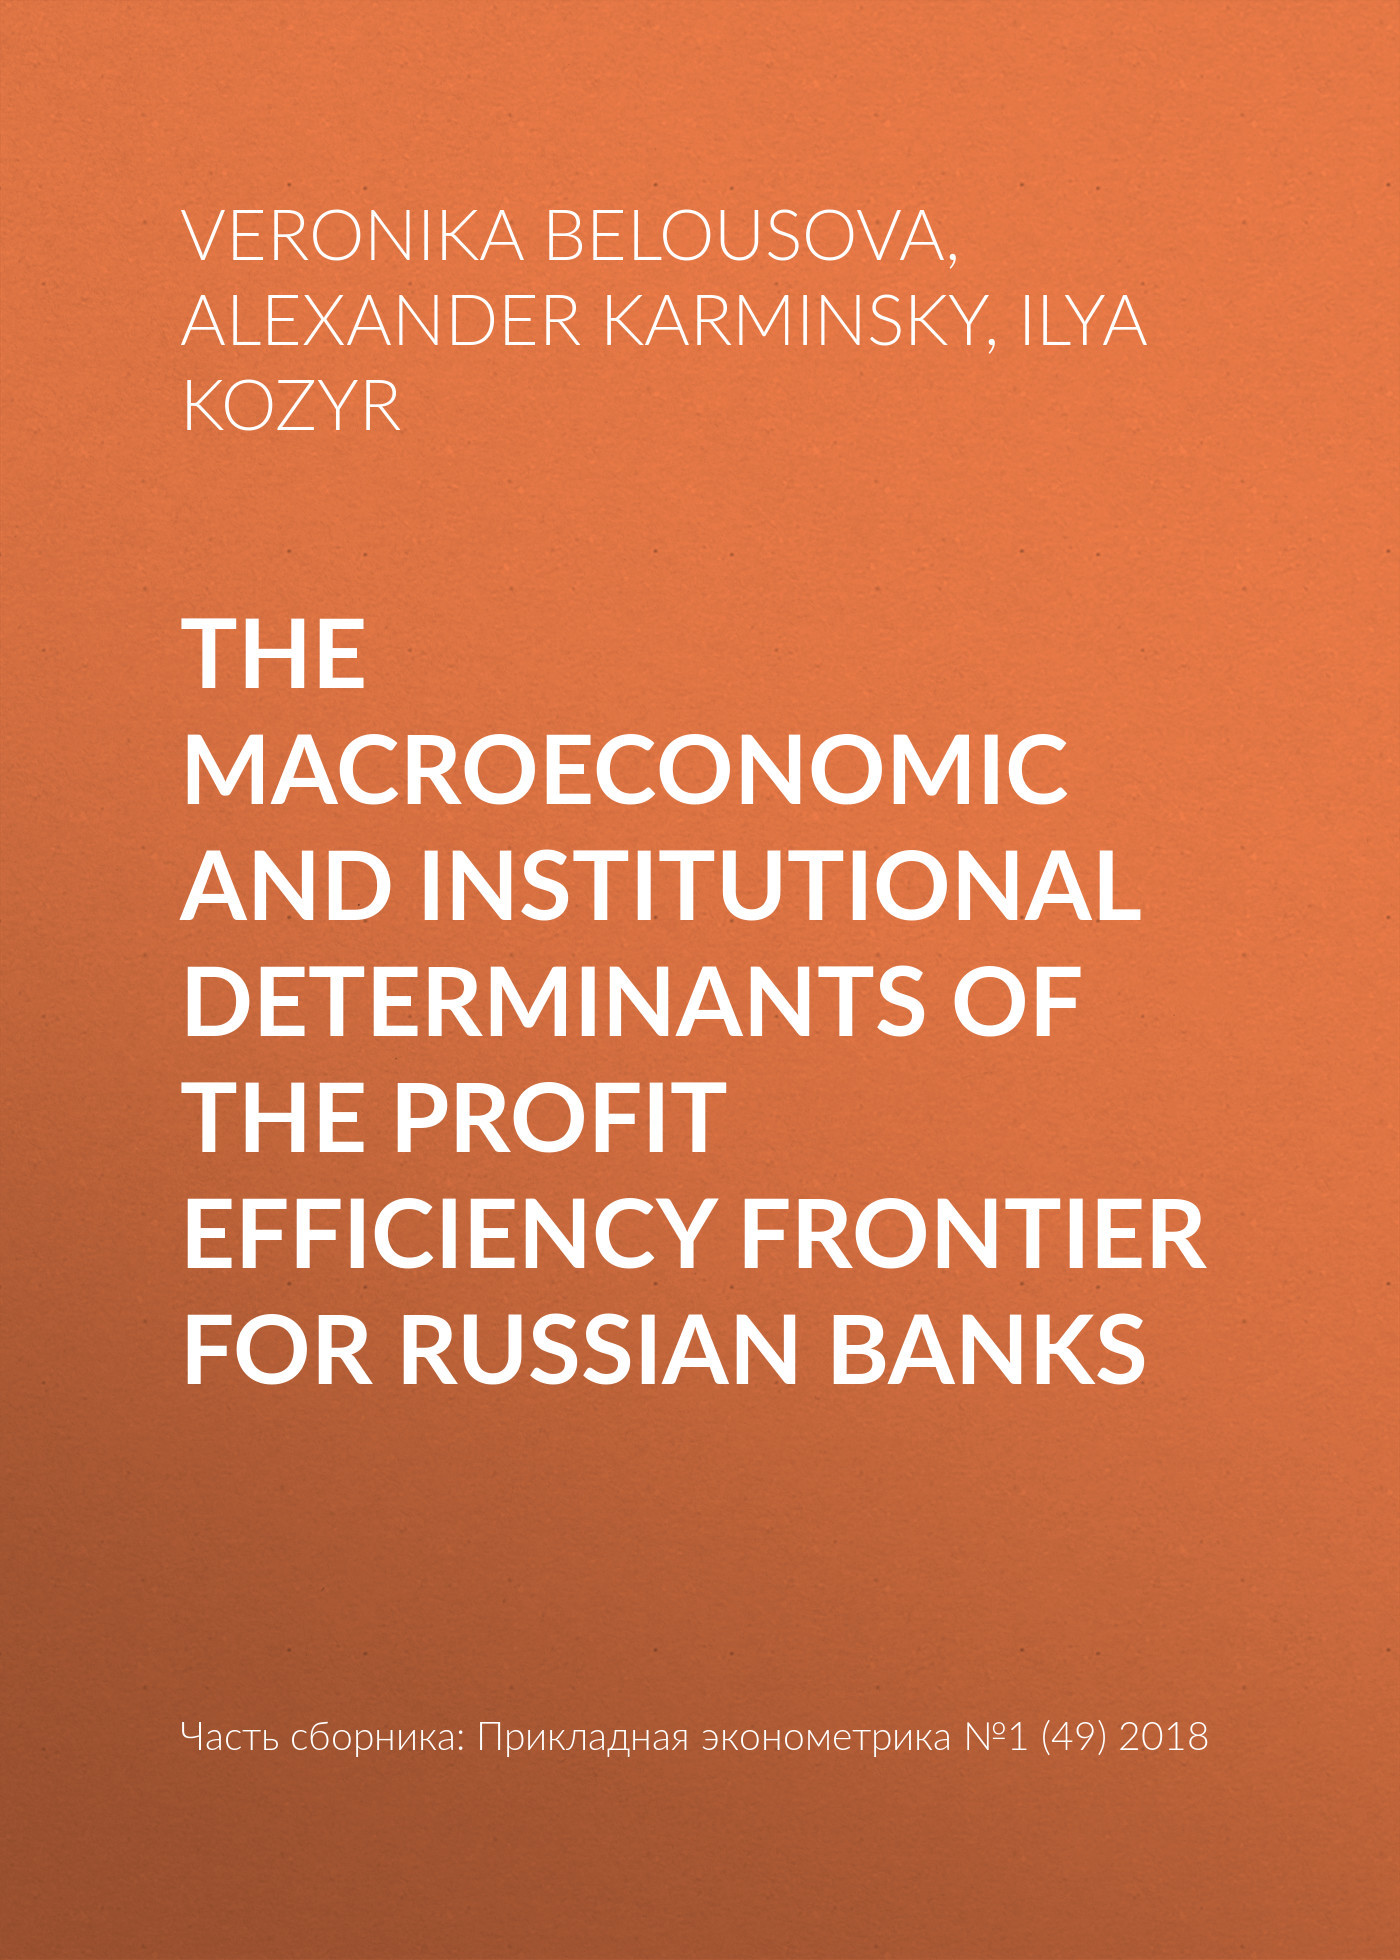 Veronika Belousova The macroeconomic and institutional determinants of the profit efficiency frontier for Russian banks therapeutic efficiency of norgestomet and pmsg in anestrous buffaloes